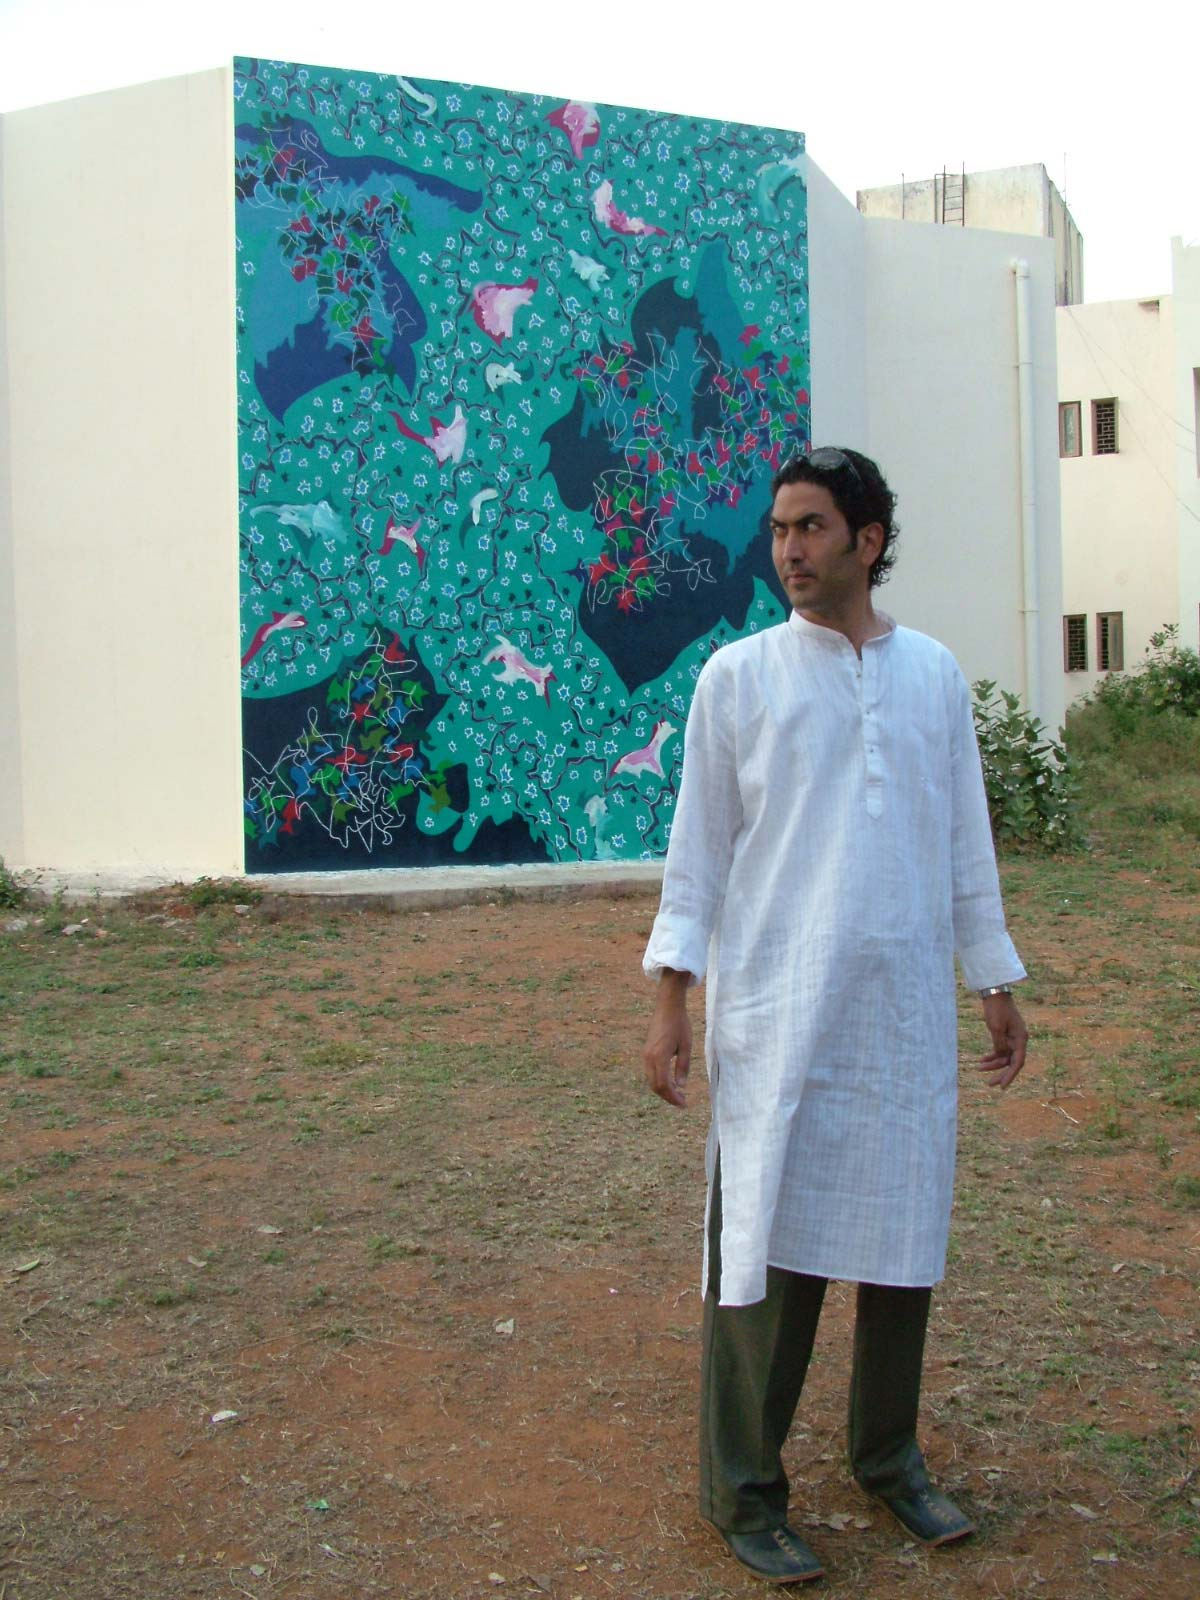 Galactic Snow (2005) Science Complex, University of Hyderabad, 5.3H x 4.1W meters, Hyderabad (India)